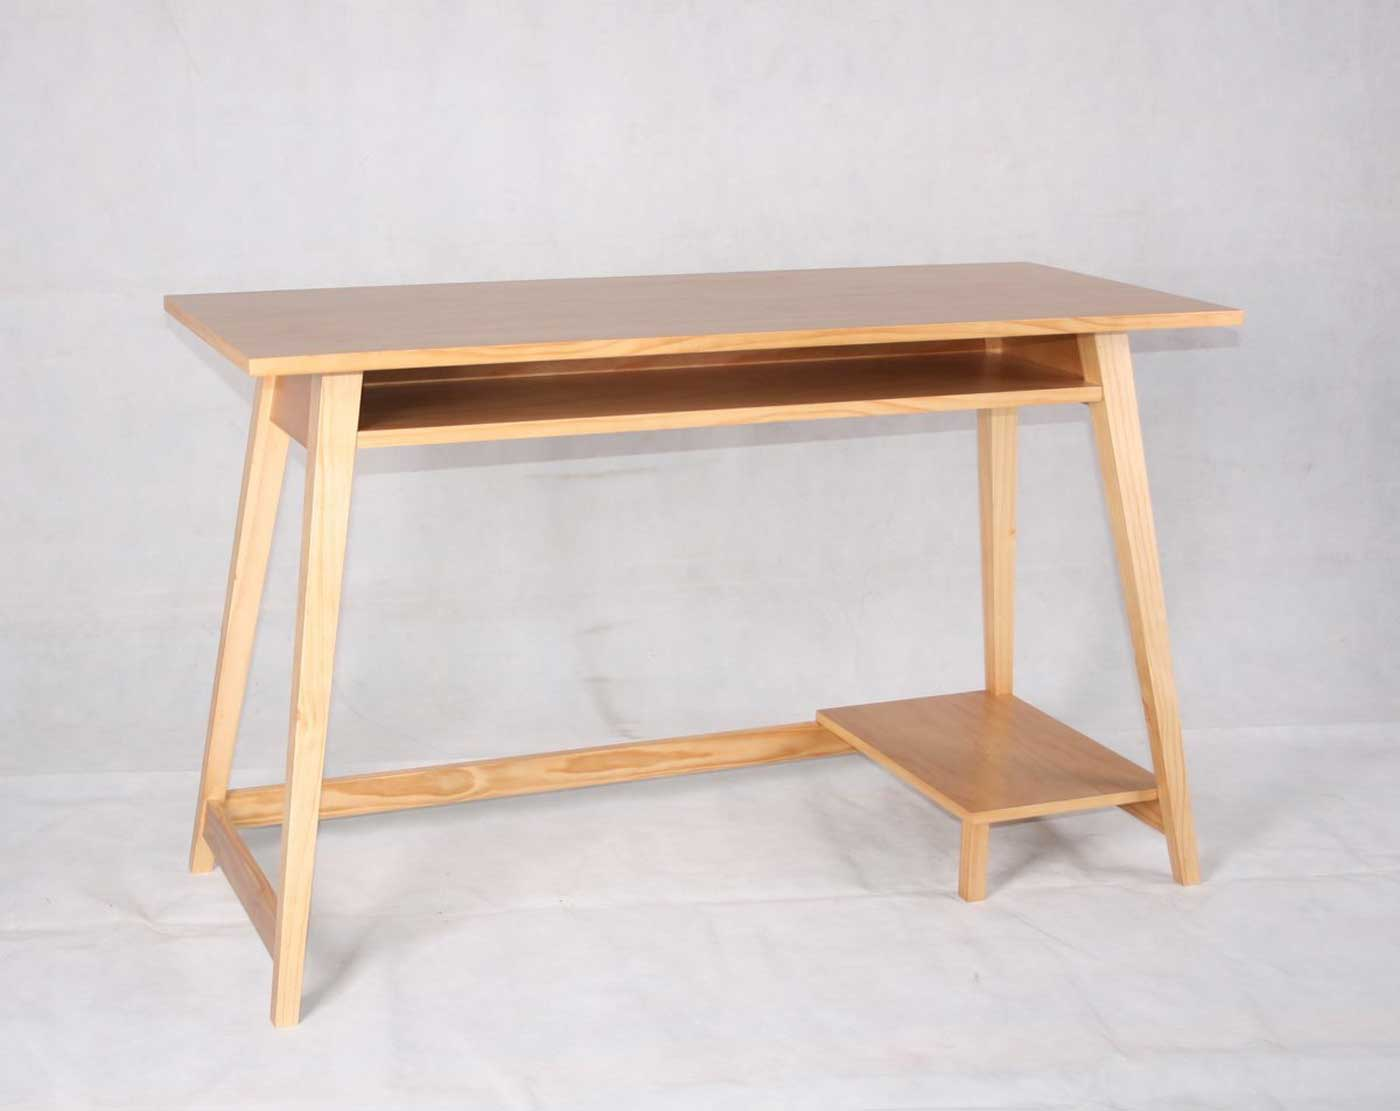 Simple Wood Desk Plans Build a simple wooden desk best woodworking ...